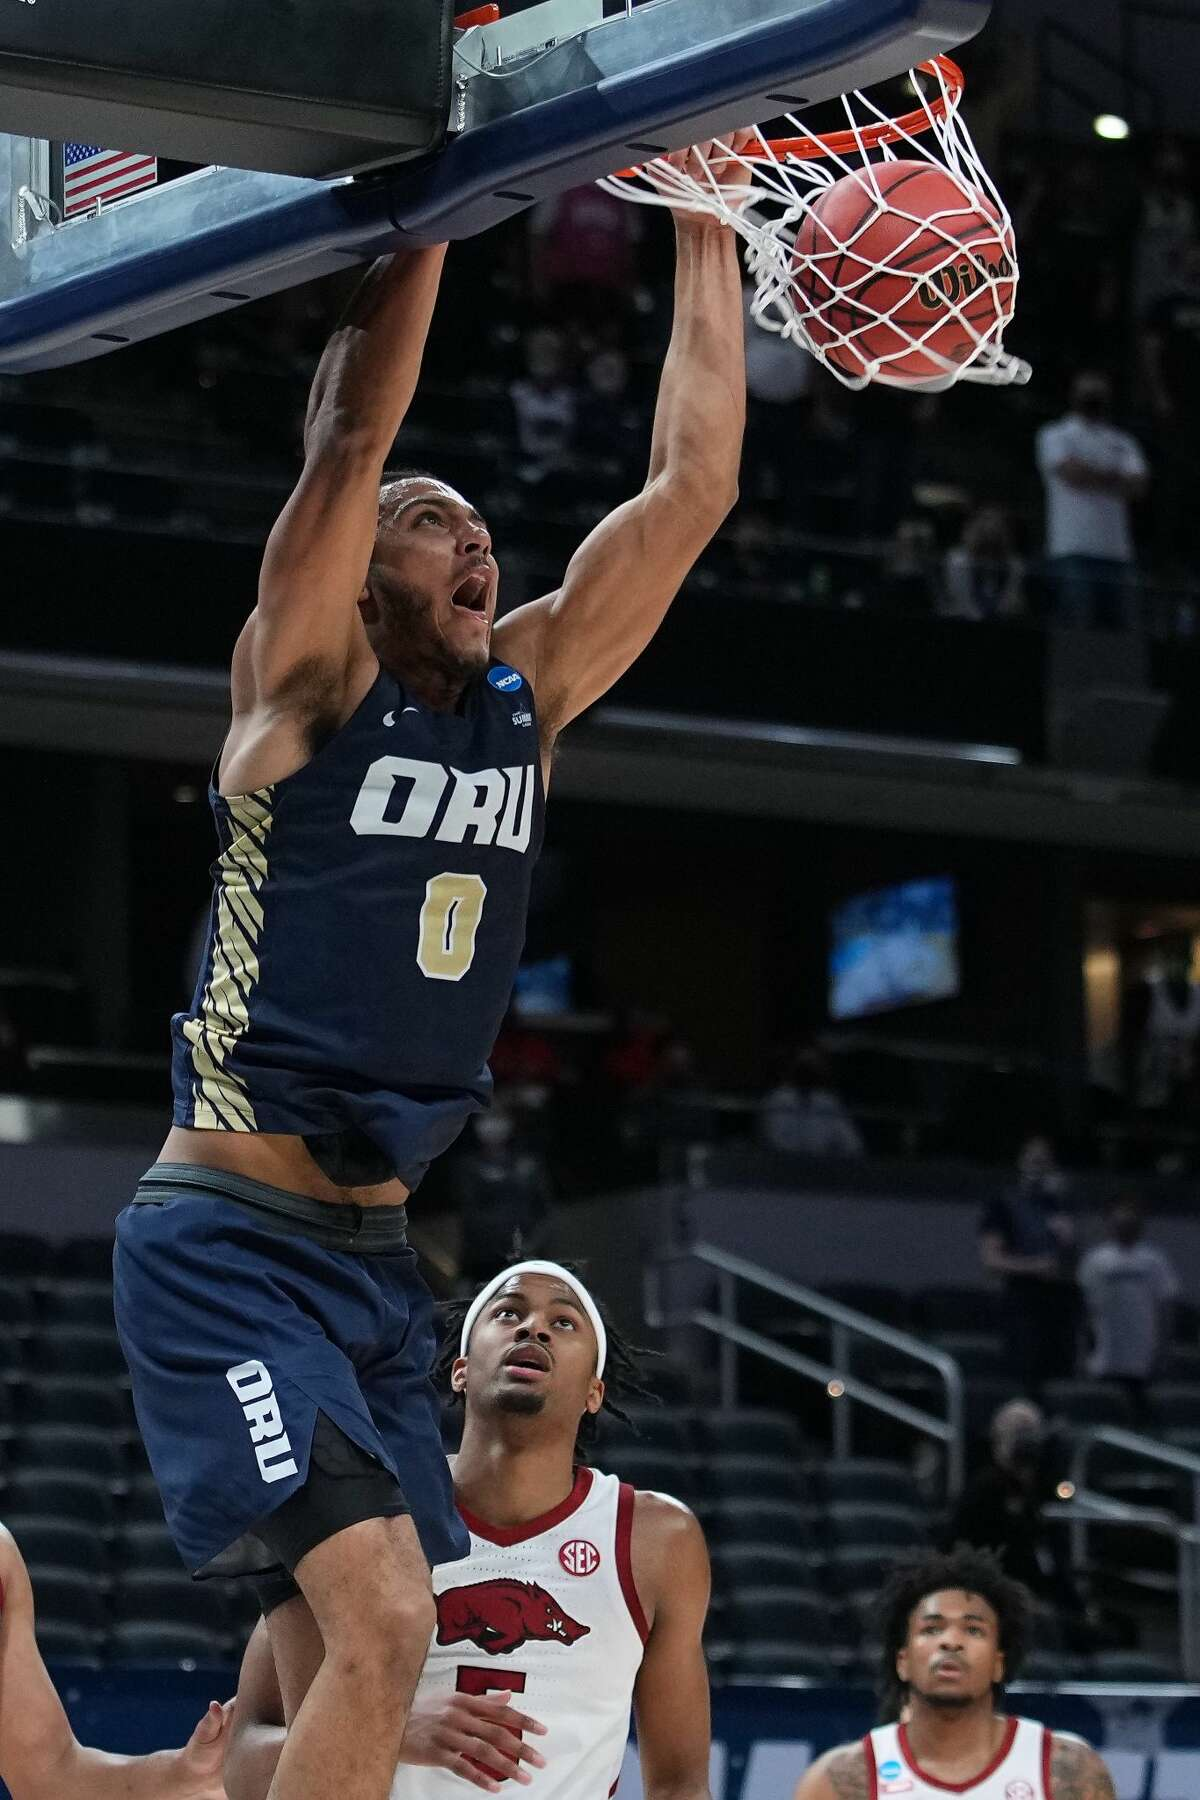 INDIANAPOLIS, IN - MARCH 27: Kevin Obanor #0 of the Oral Roberts Golden Eagles dunks against the Arkansas Razorbacks in the Sweet Sixteen round of the 2021 NCAA Division I Mens Basketball Tournament held at Bankers Life Fieldhouse on March 27, 2021 in Indianapolis, Indiana. (Photo by Jack Dempsey/NCAA Photos via Getty Images)